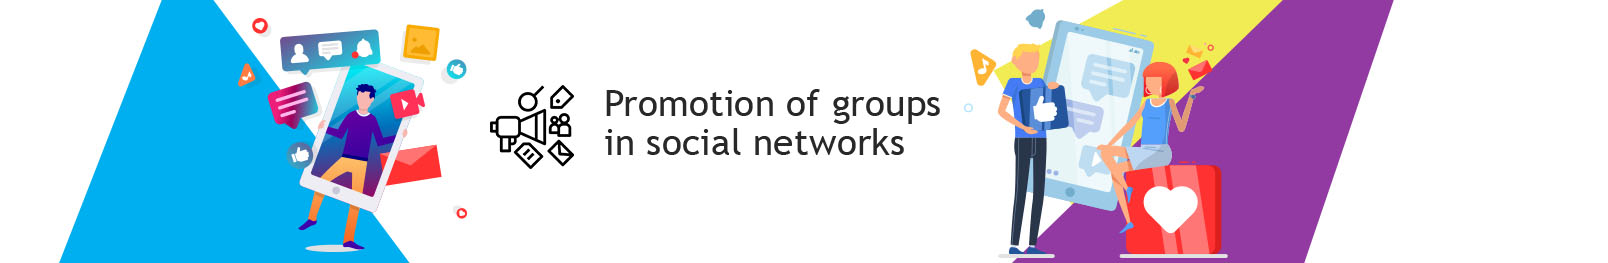 Promotion of groups in social networks (SMM).